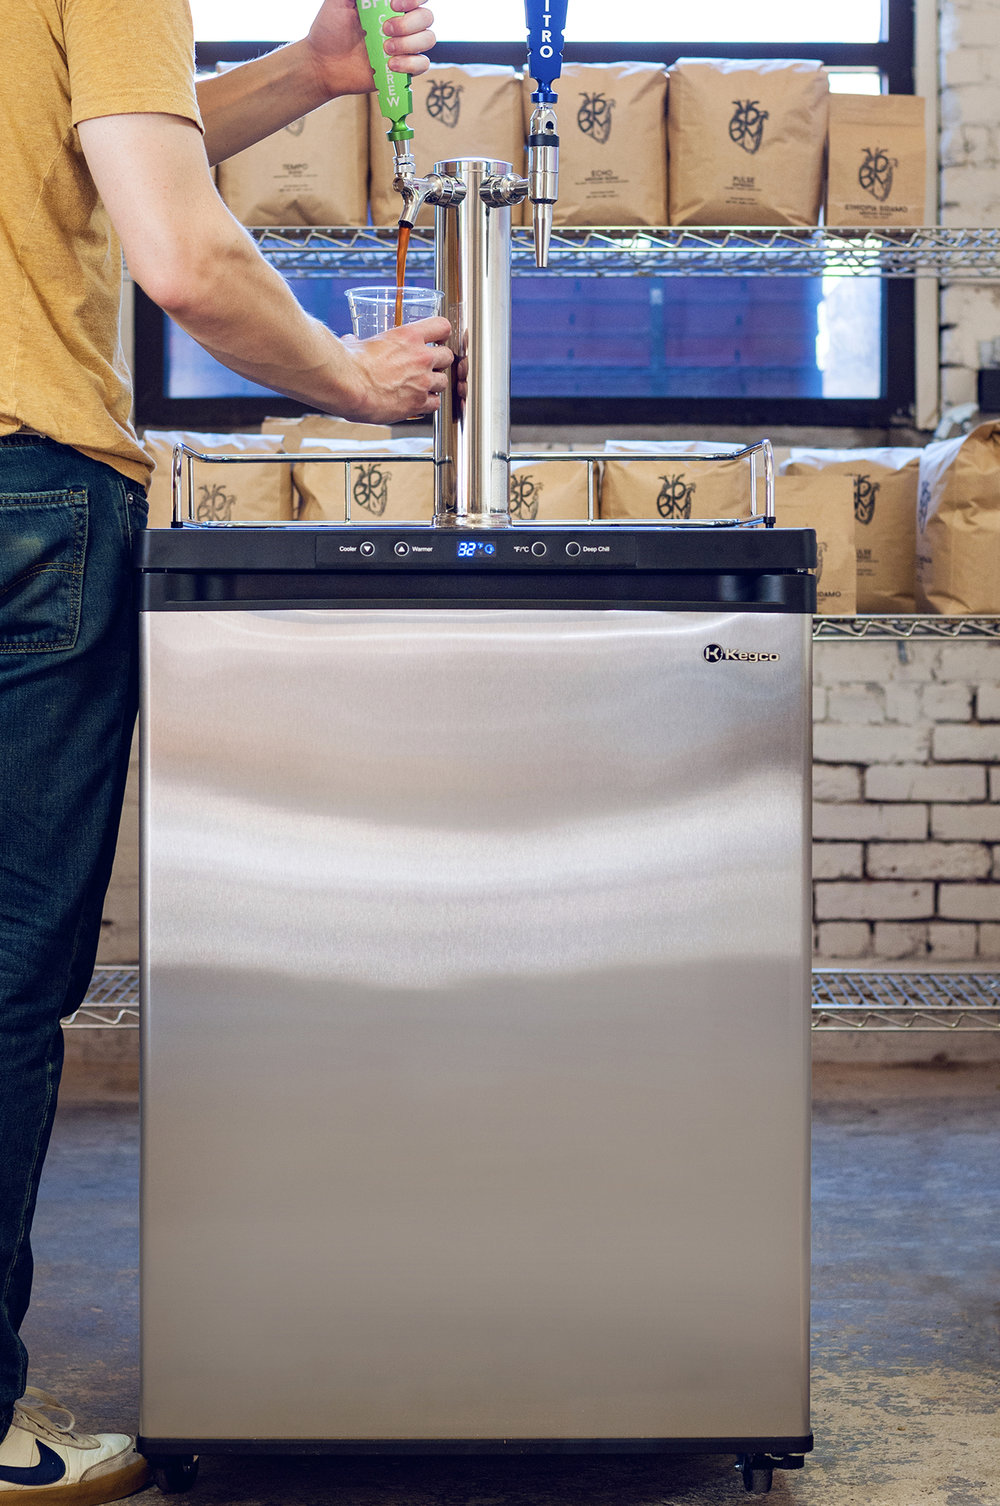 COLD BREW COFFEE OR TEA  - Specialized reusable brewing containers  - Filter system   If serving kegged cold brew on tap:   - Freestanding kegerator OR in-house tap system  - Nitrogen